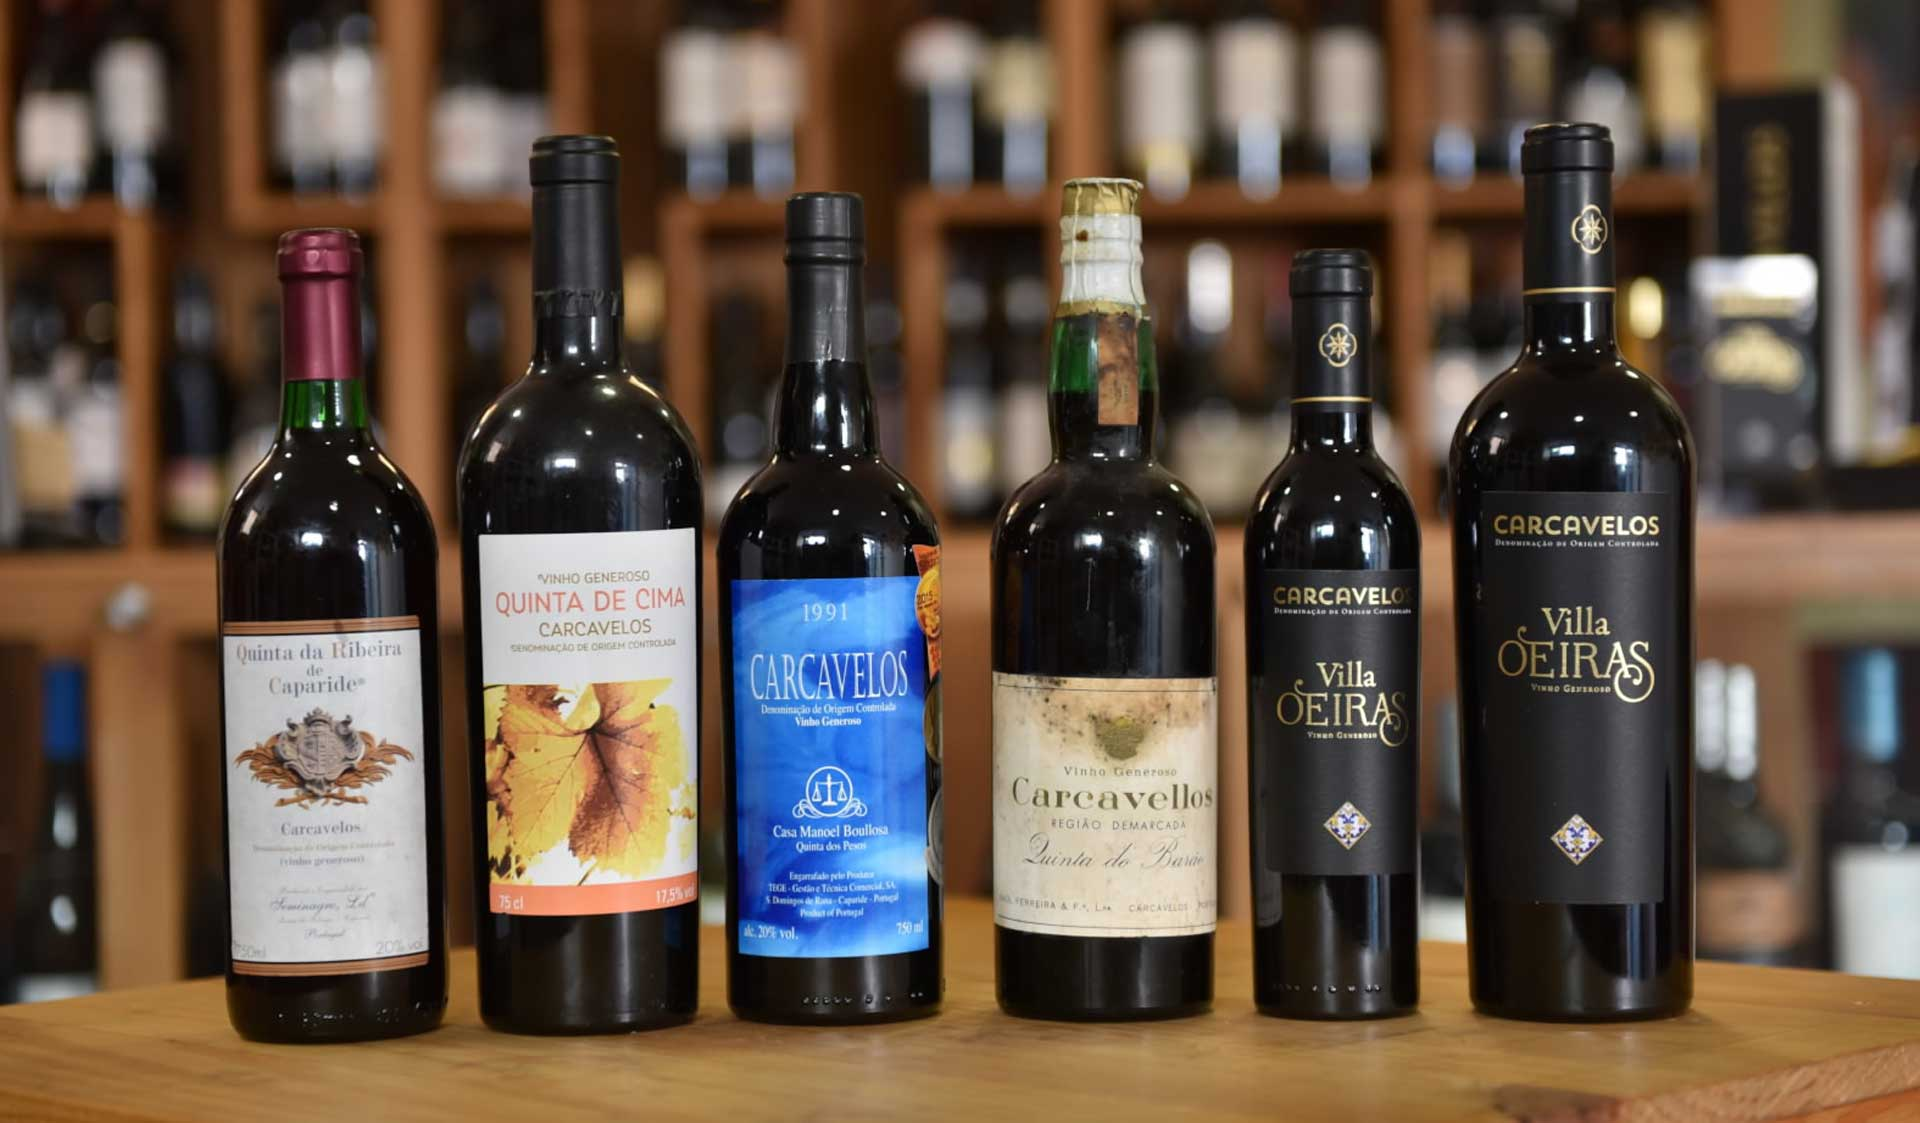 VINHOS-DE-CARCAVELOS-REFERENCIAS